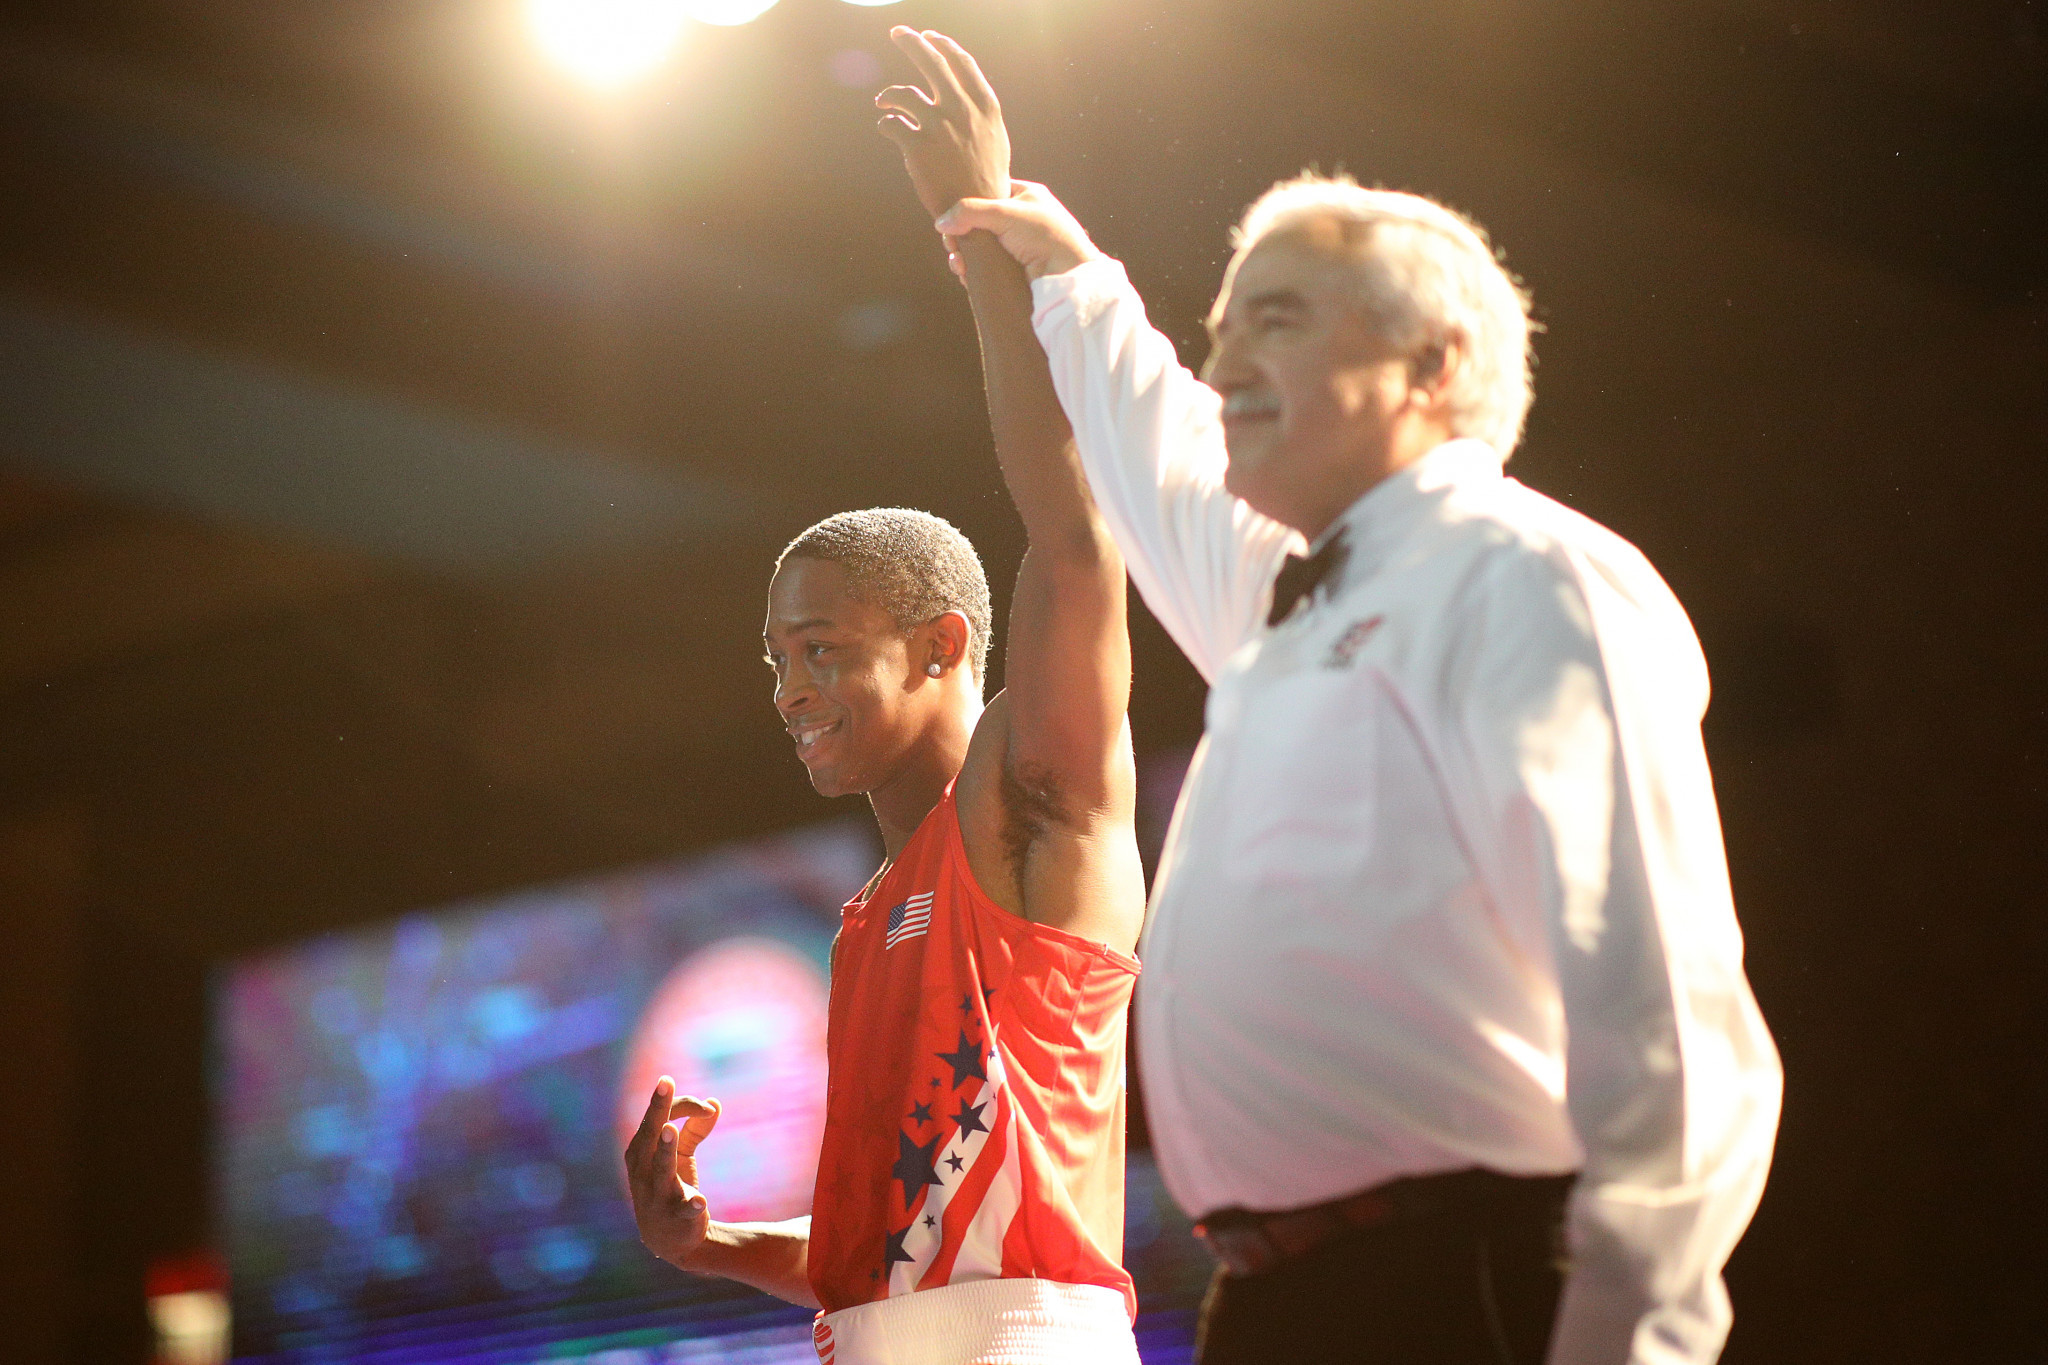 American boxer Davis to wait for Olympics before turning pro